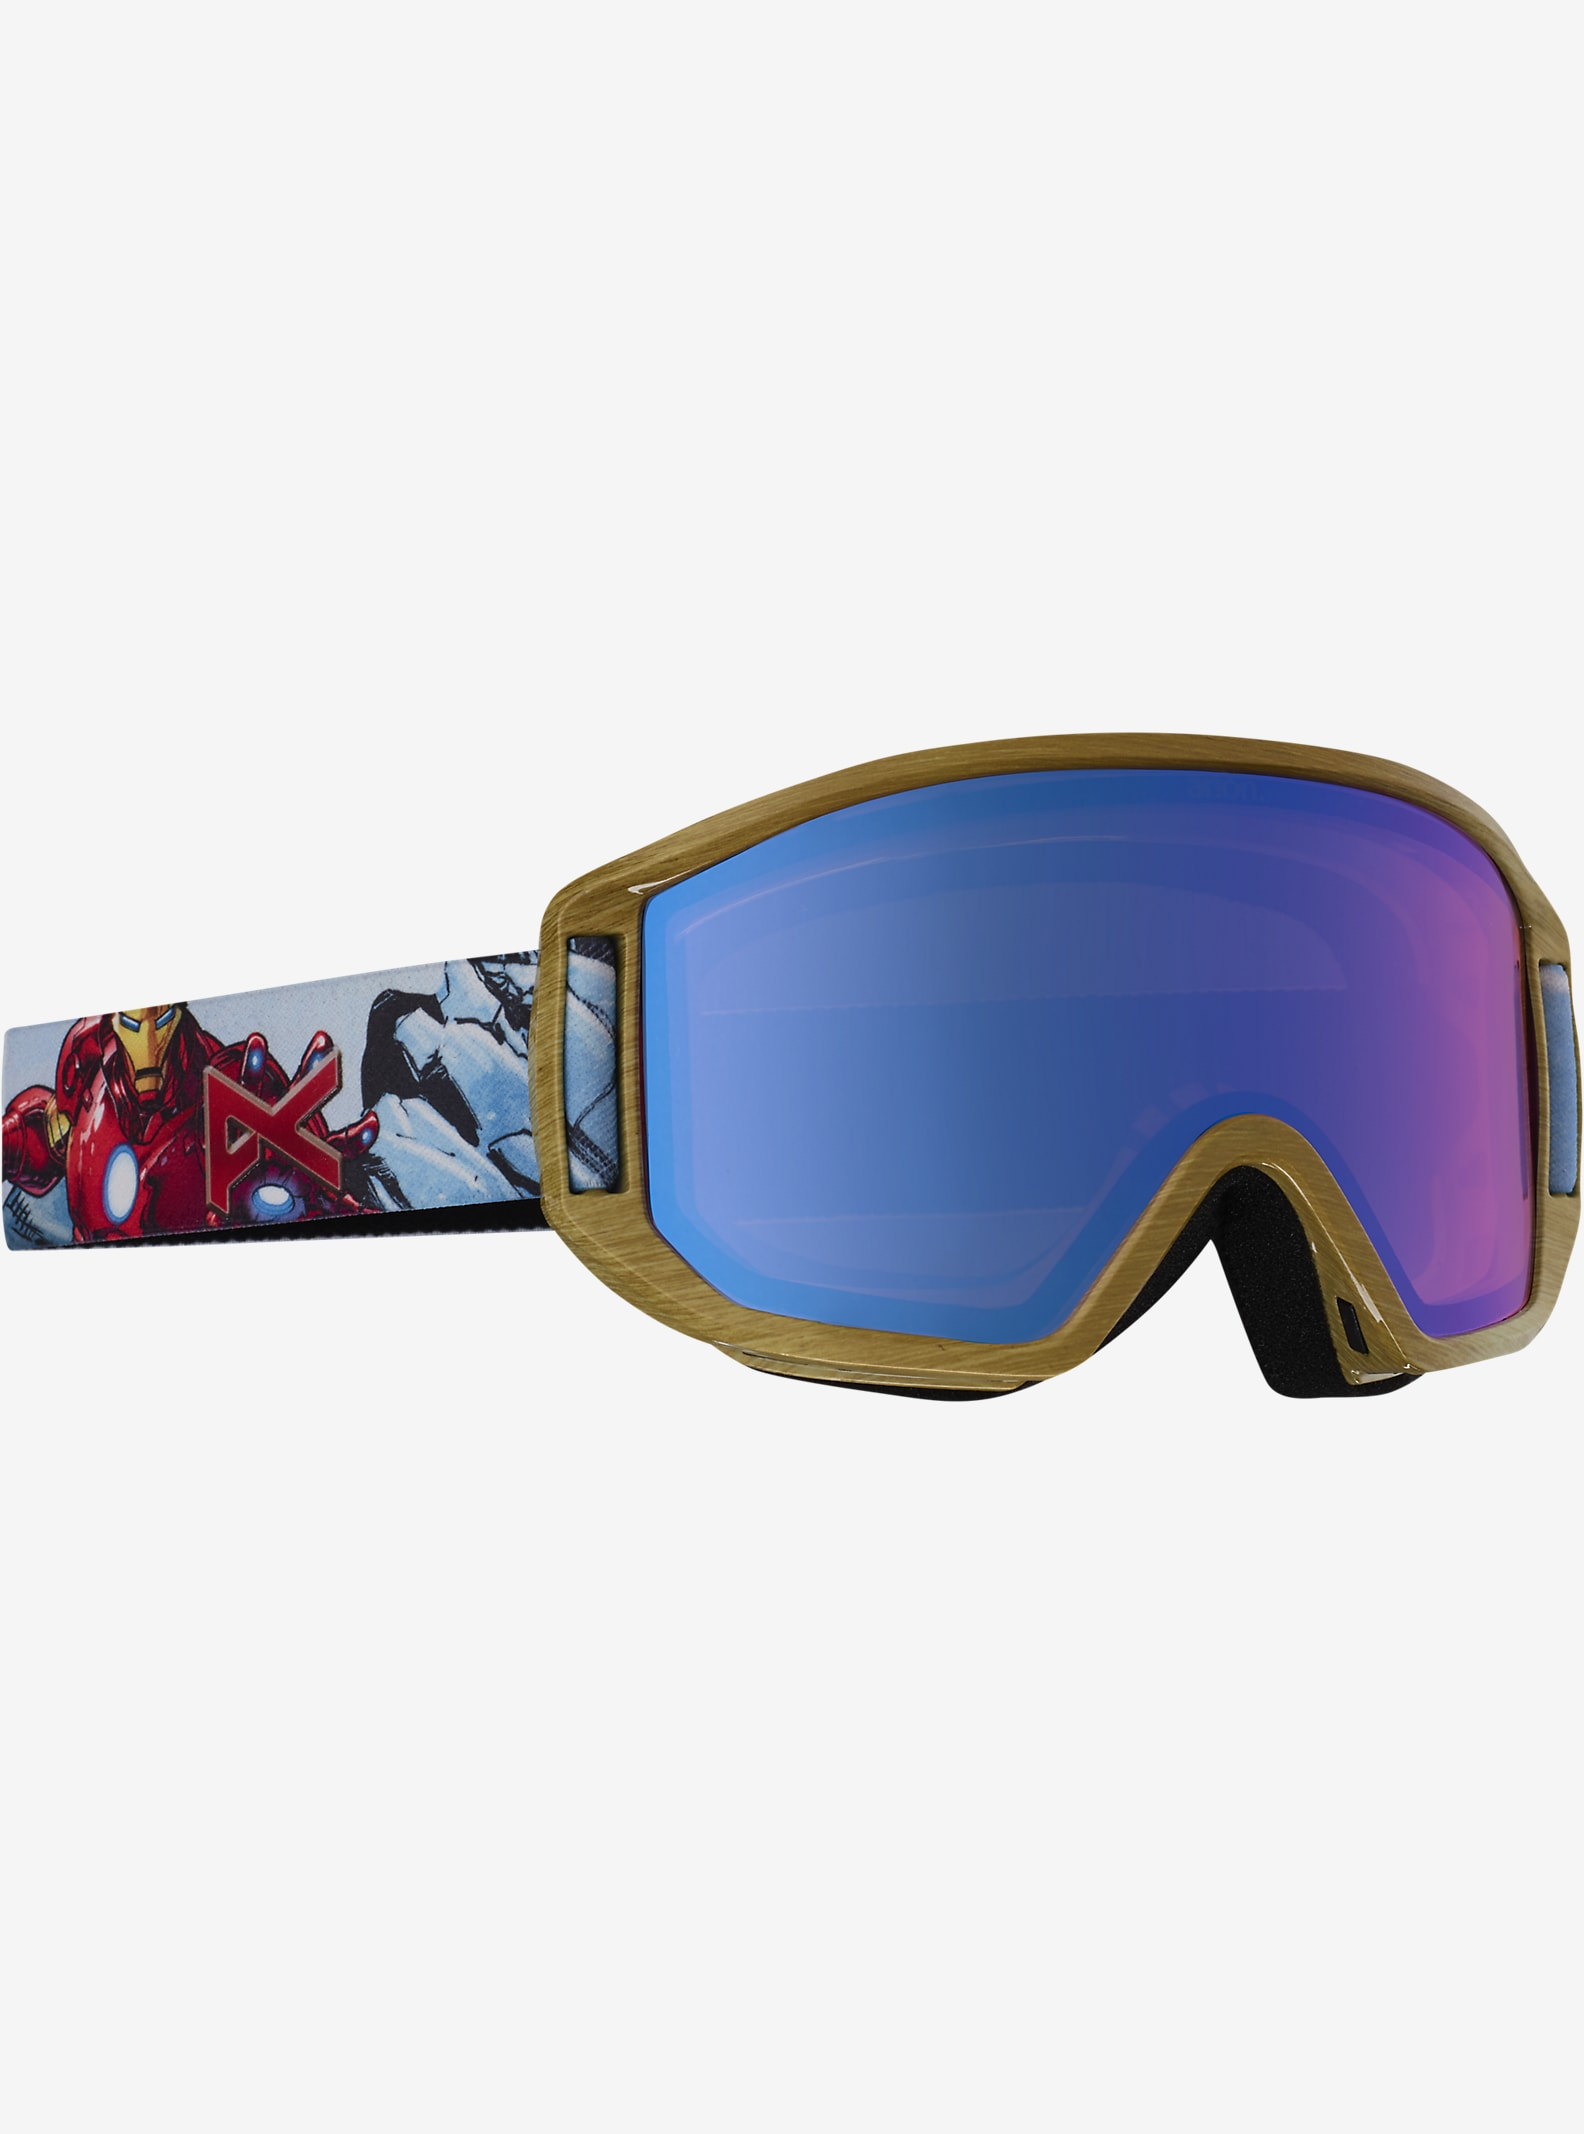 Marvel® x anon. Relapse Jr. Goggle shown in Frame: Iron Man™ © 2016 MARVEL, Lens: Blue Amber